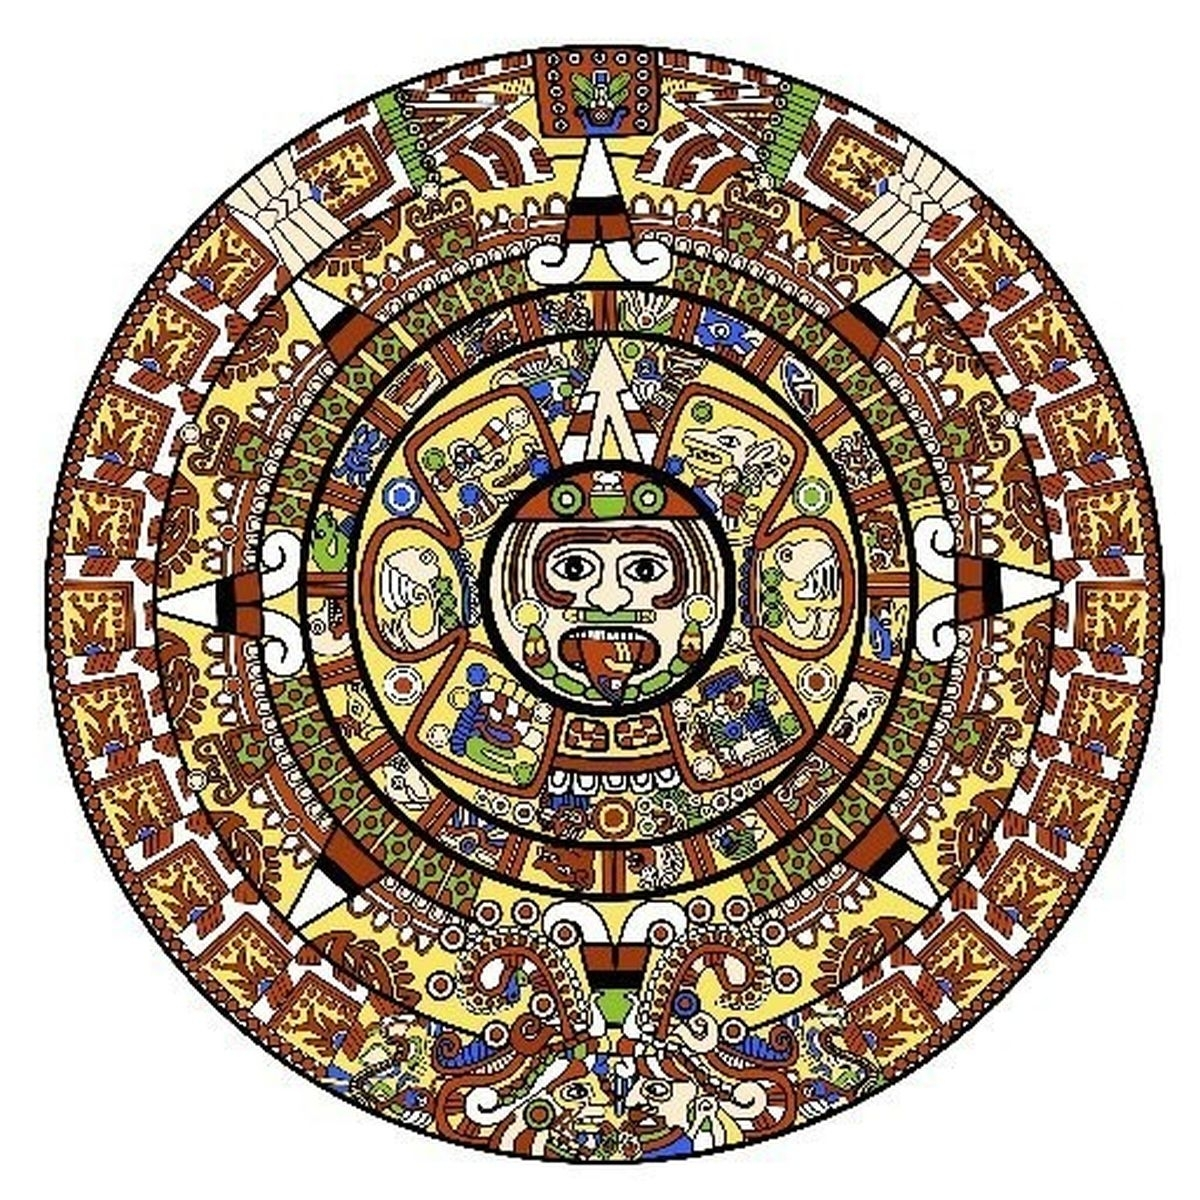 The End Of The World As We Know It? - Nj regarding Mayans Calendar End Of World